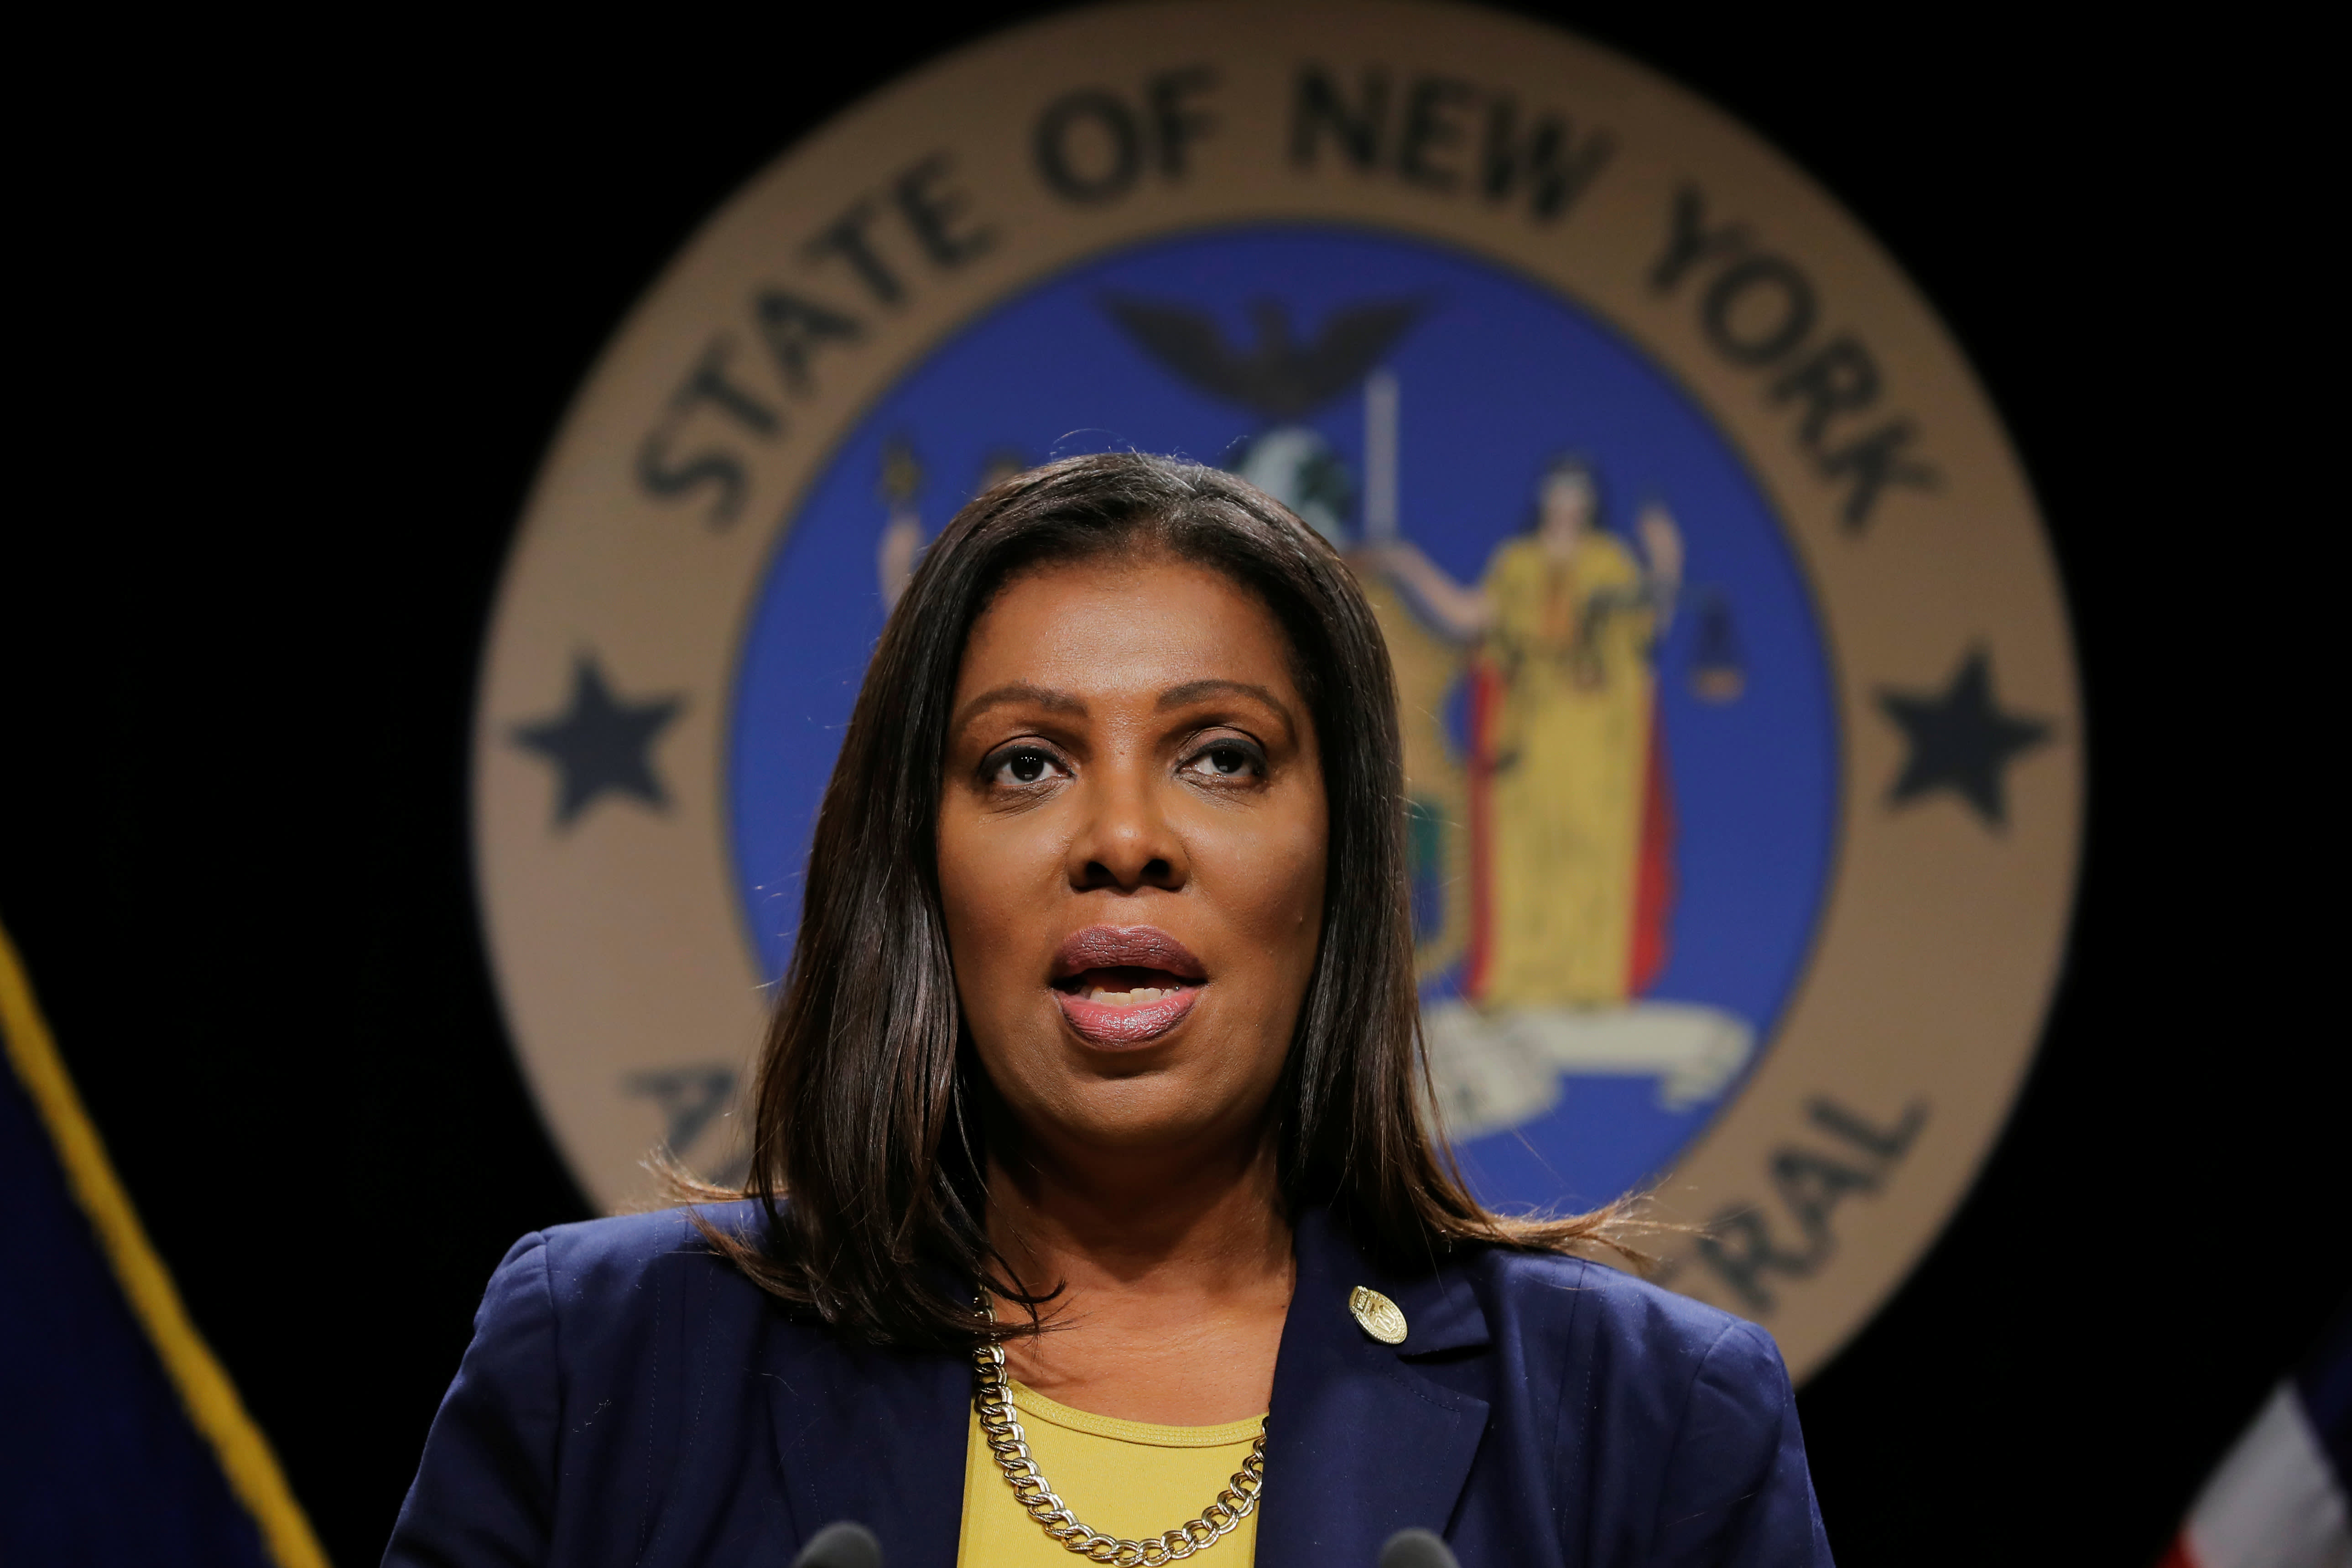 New York Attorney General ready to oversee investigation into Cuomo sexual harassment allegations